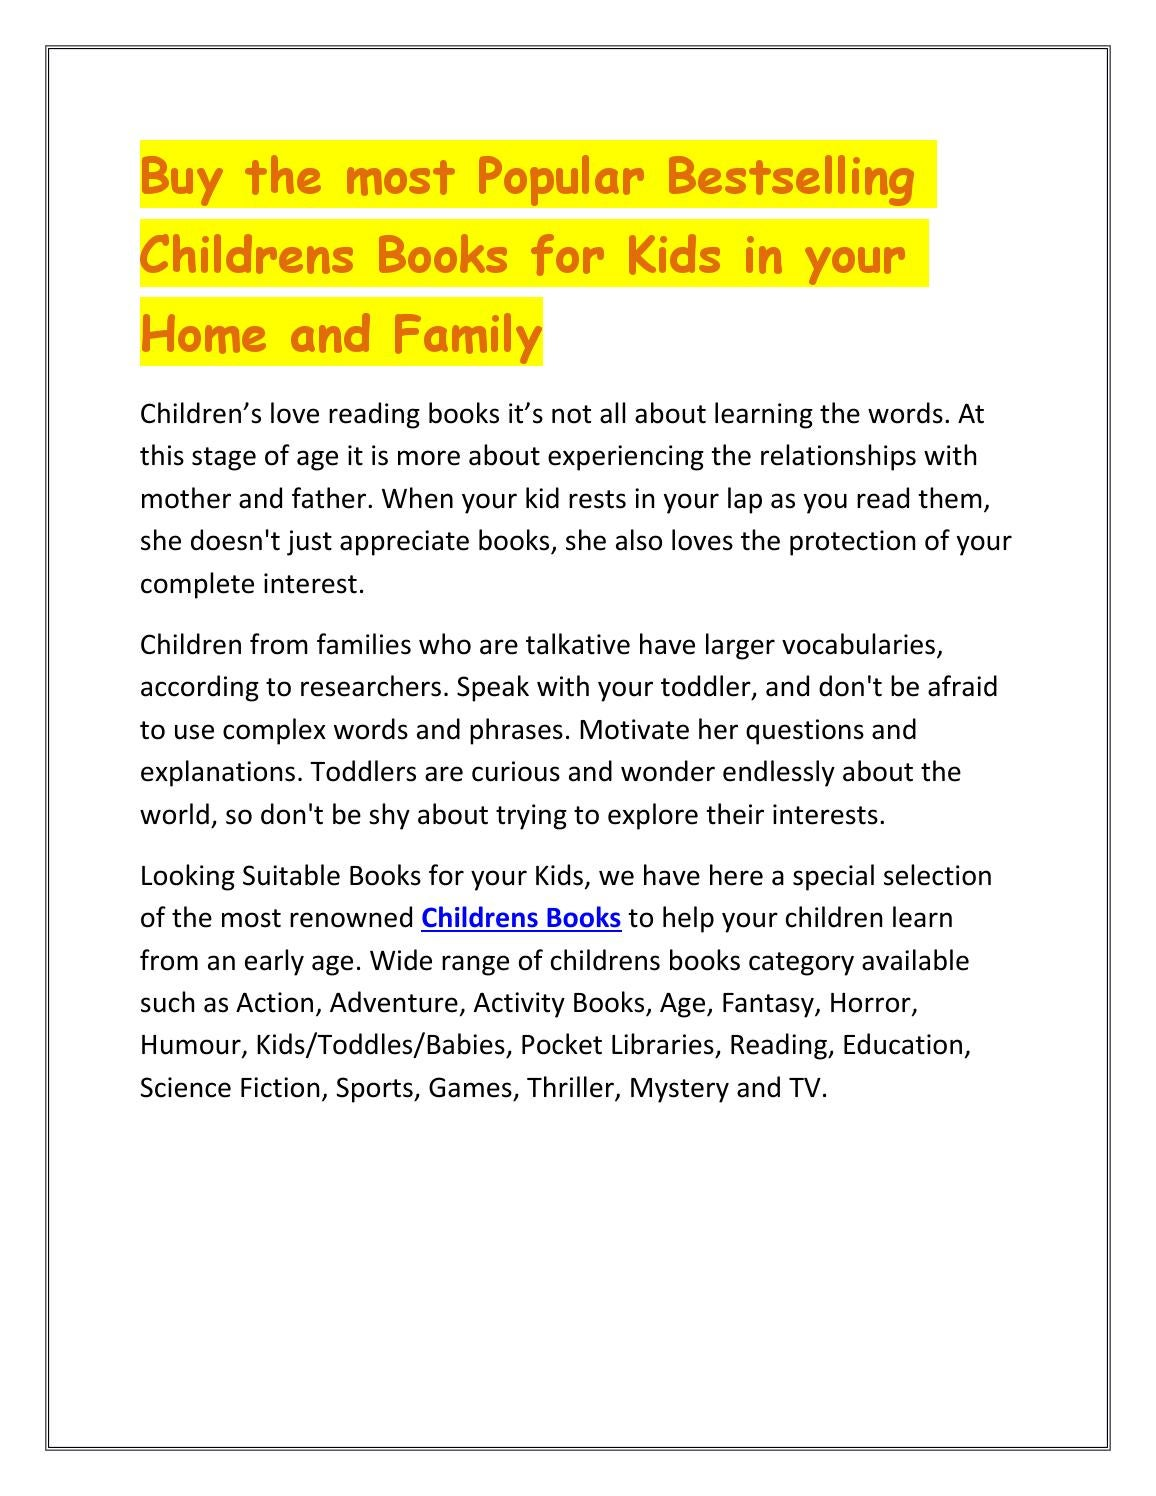 Buy The Most Popular Bestselling Childrens Books For Kids In Your